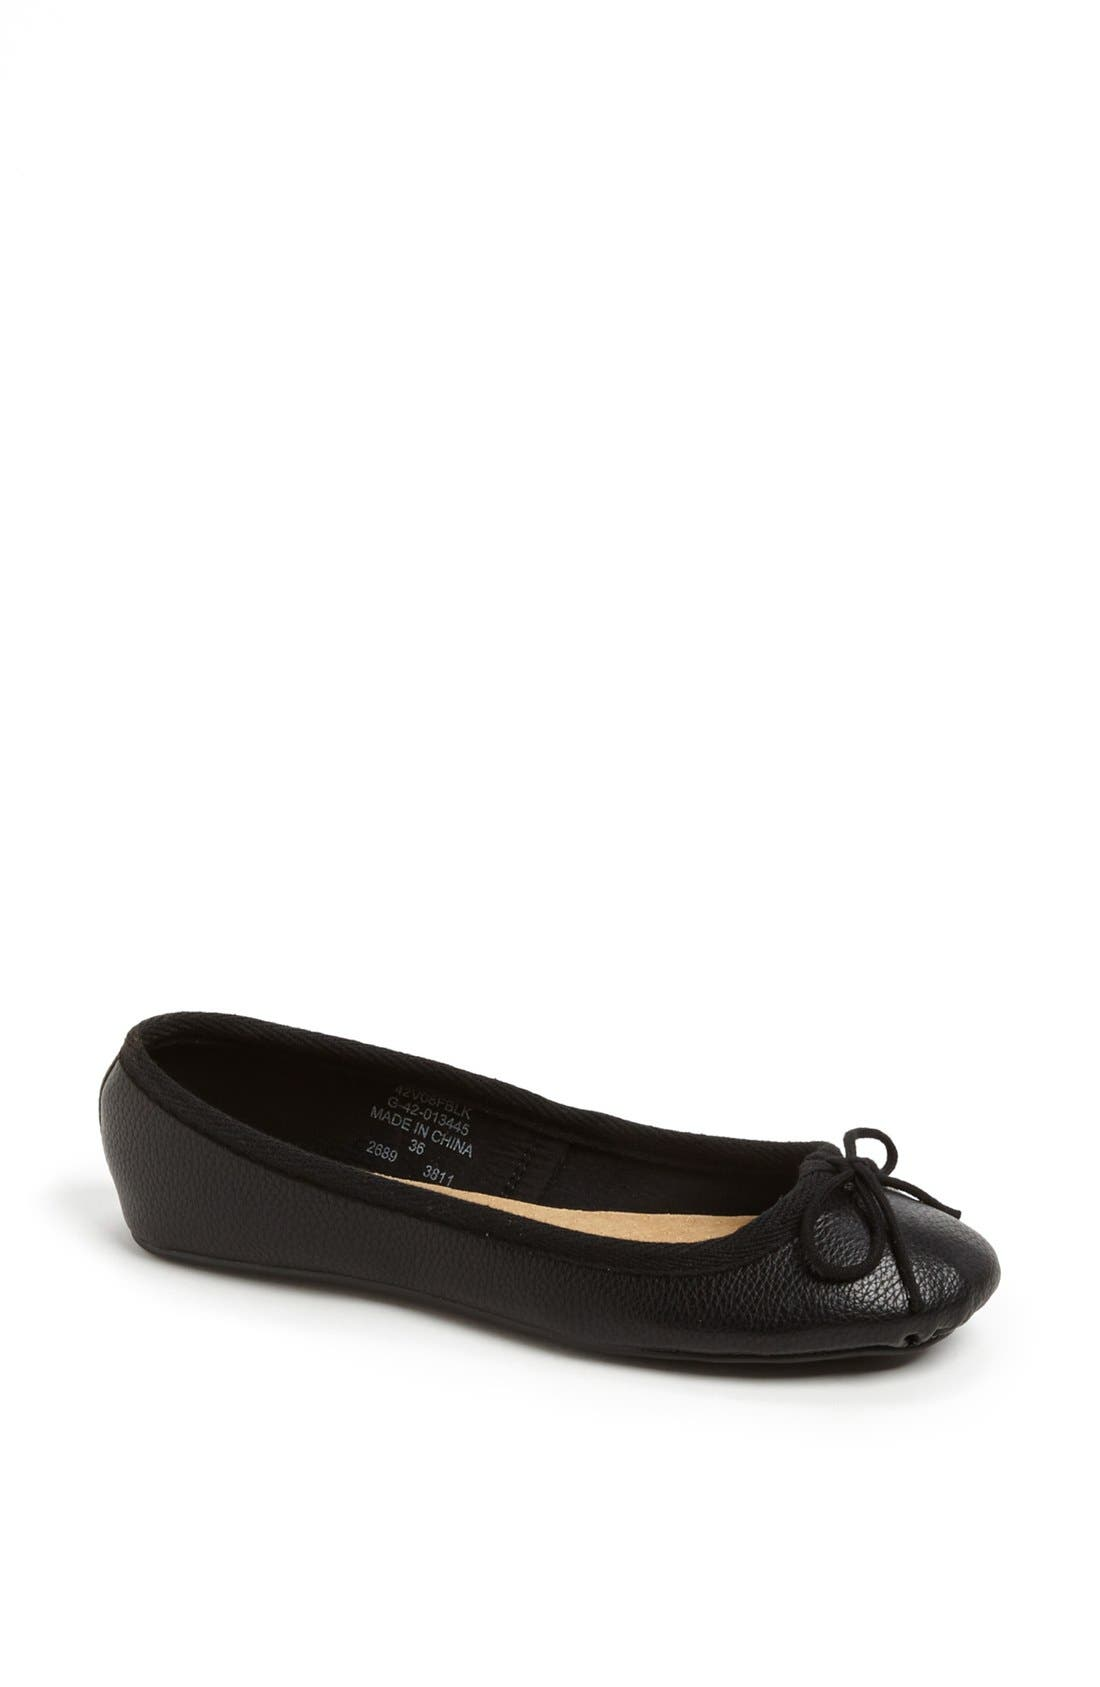 Alternate Image 1 Selected - Topshop 'Vibrant Tumbled' Ballerina Flat